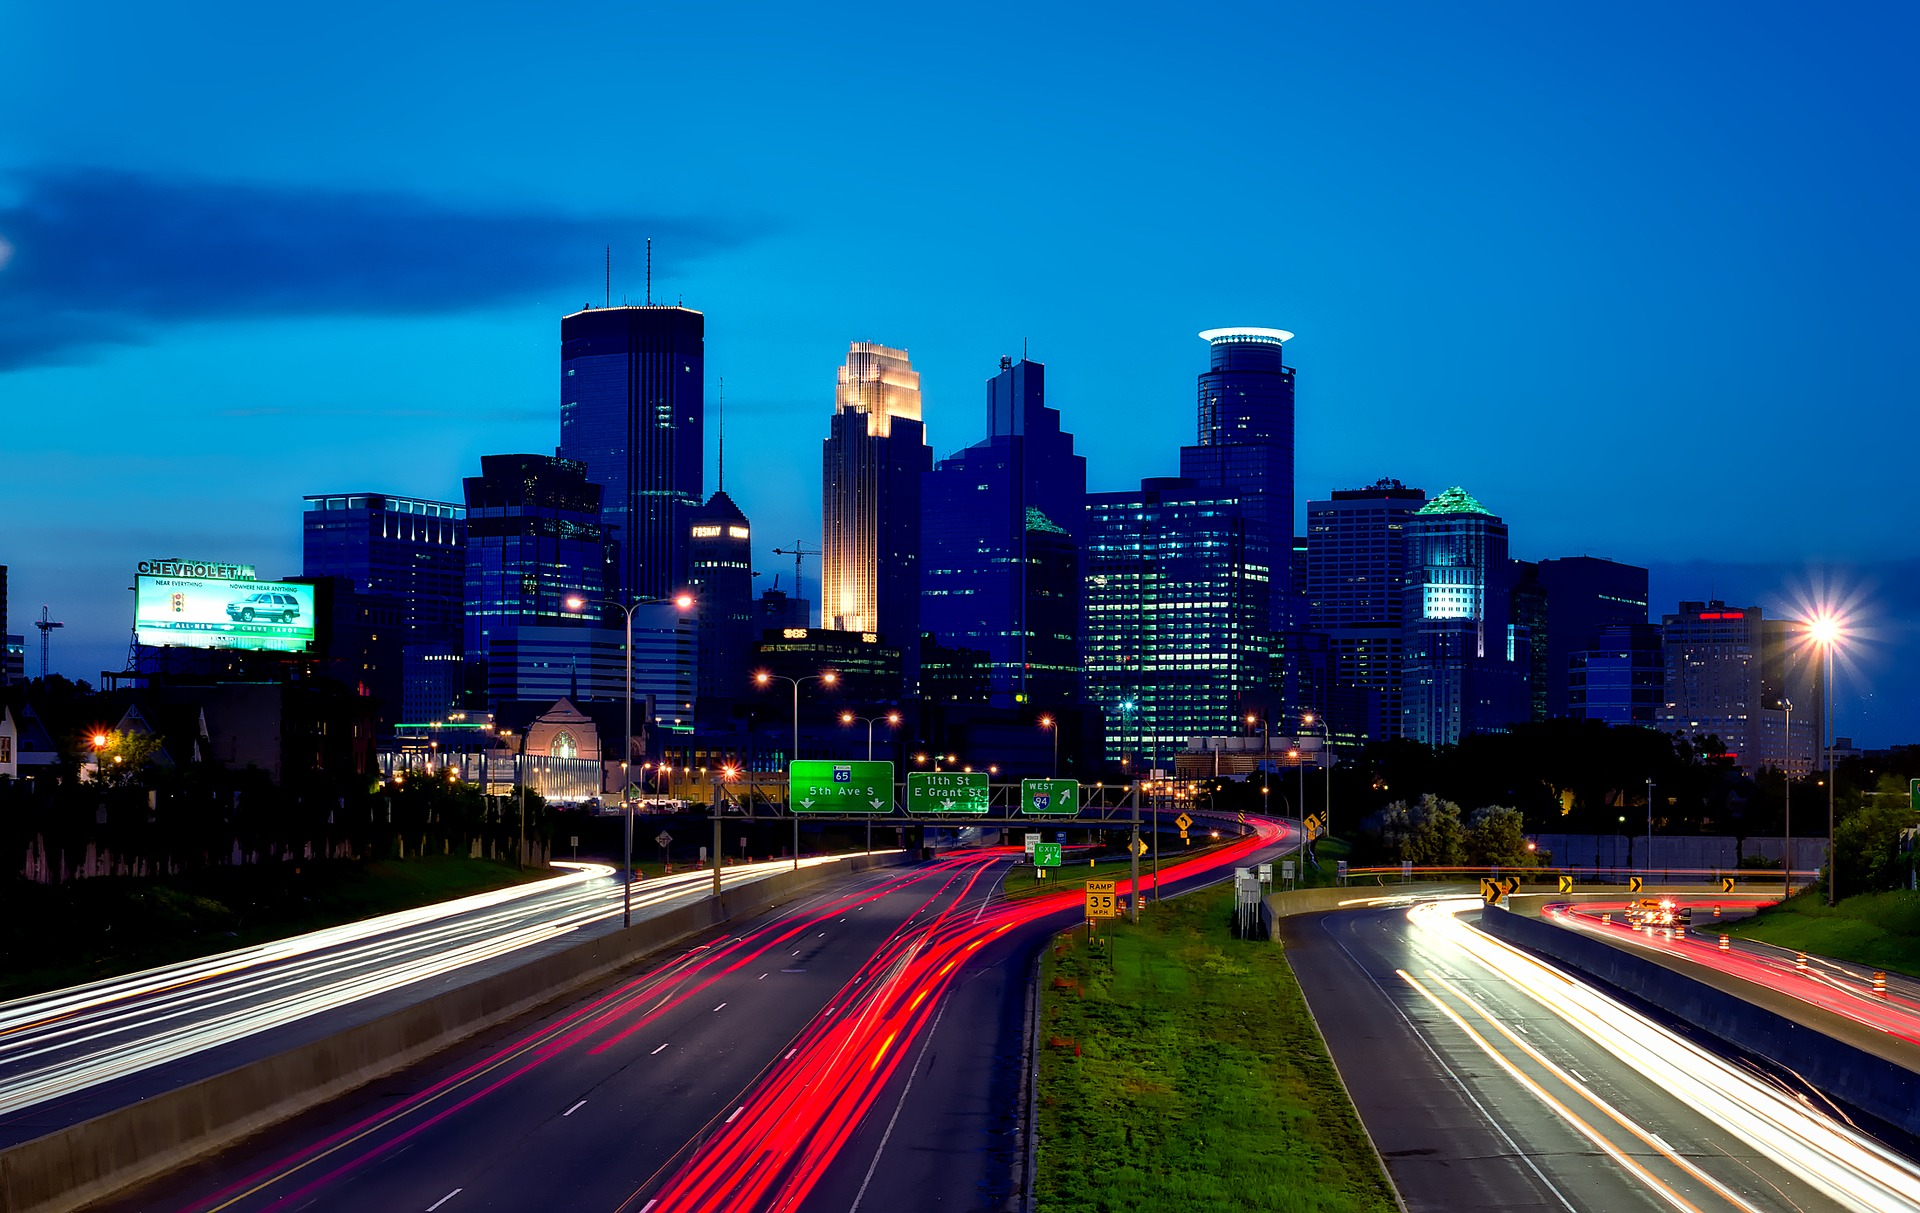 minneapolis-1632077_1920